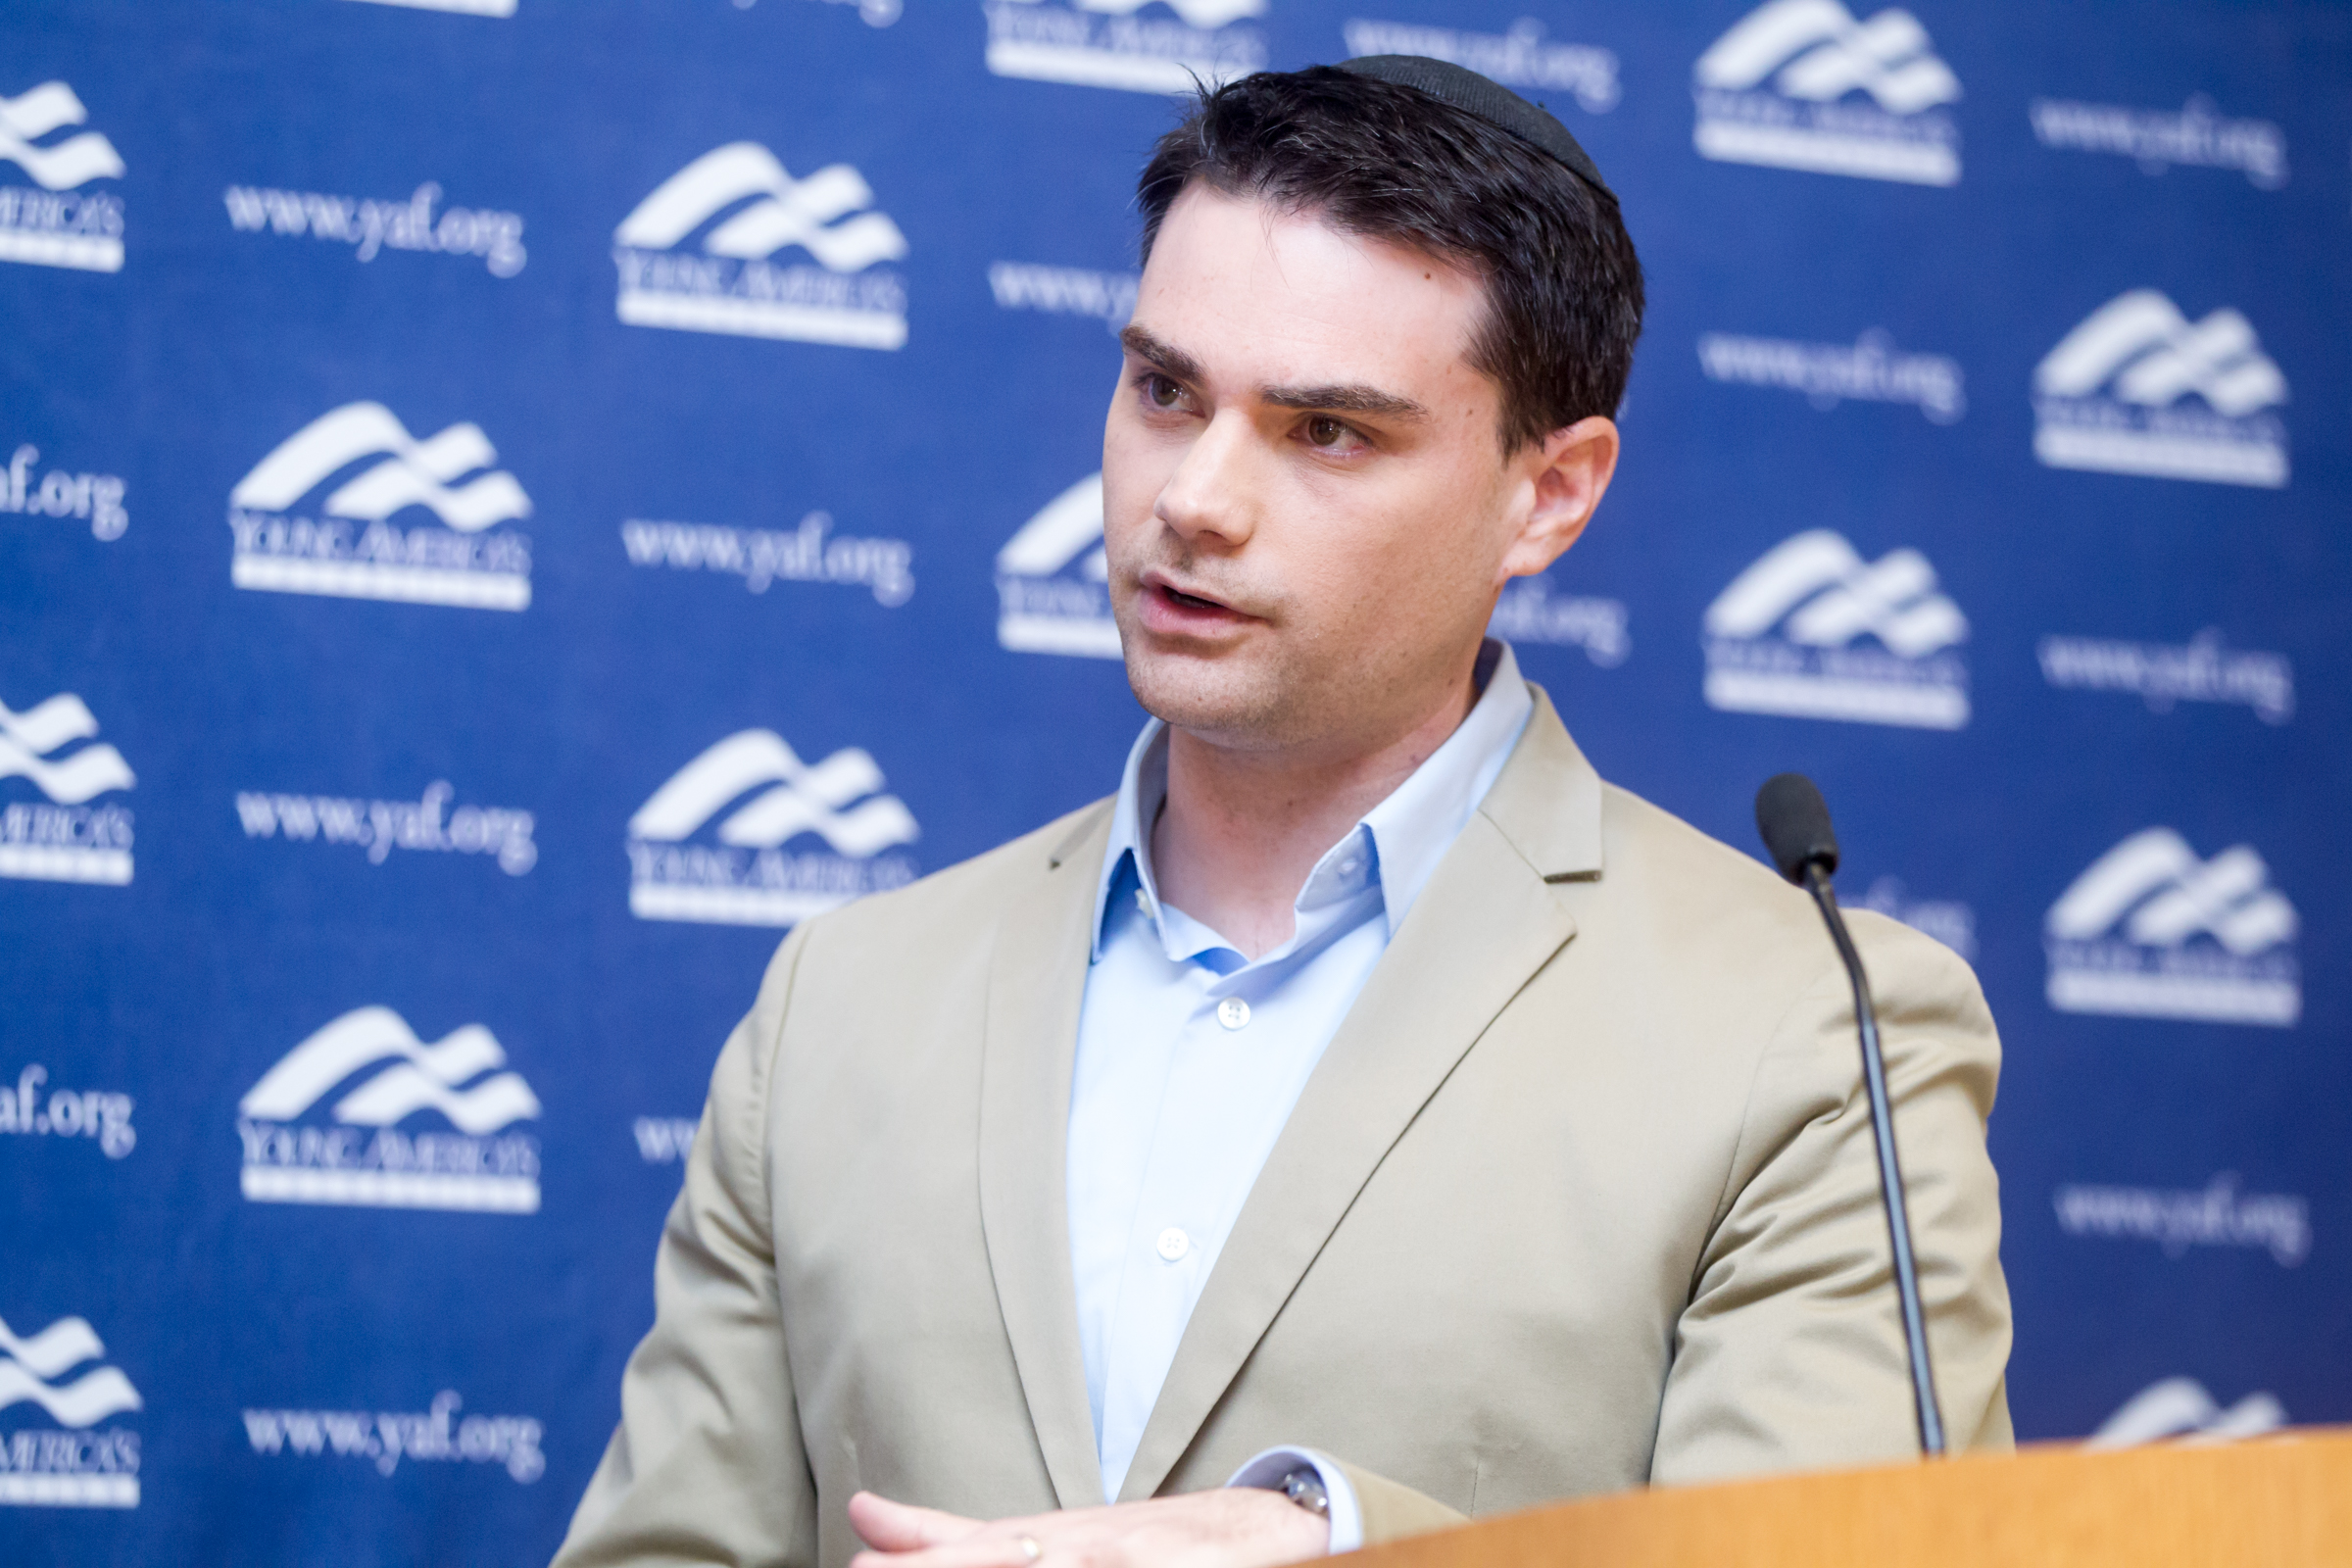 POLITICO's Shapiro Meltdown Shows Why We Need Truth-Seeking Journalists